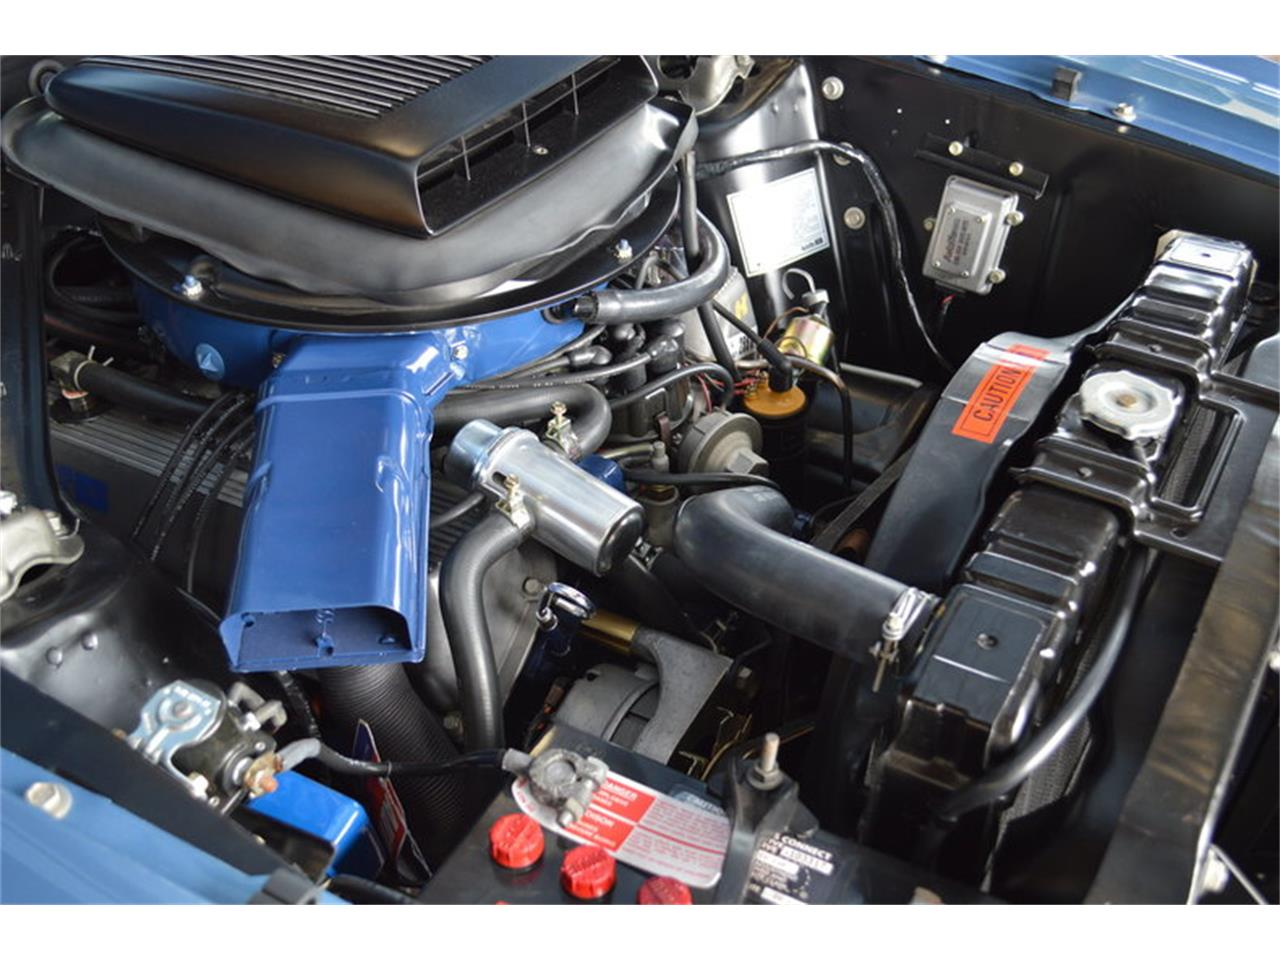 Large Picture of 1970 Ford Mustang located in Texas - $122,500.00 - M7WN